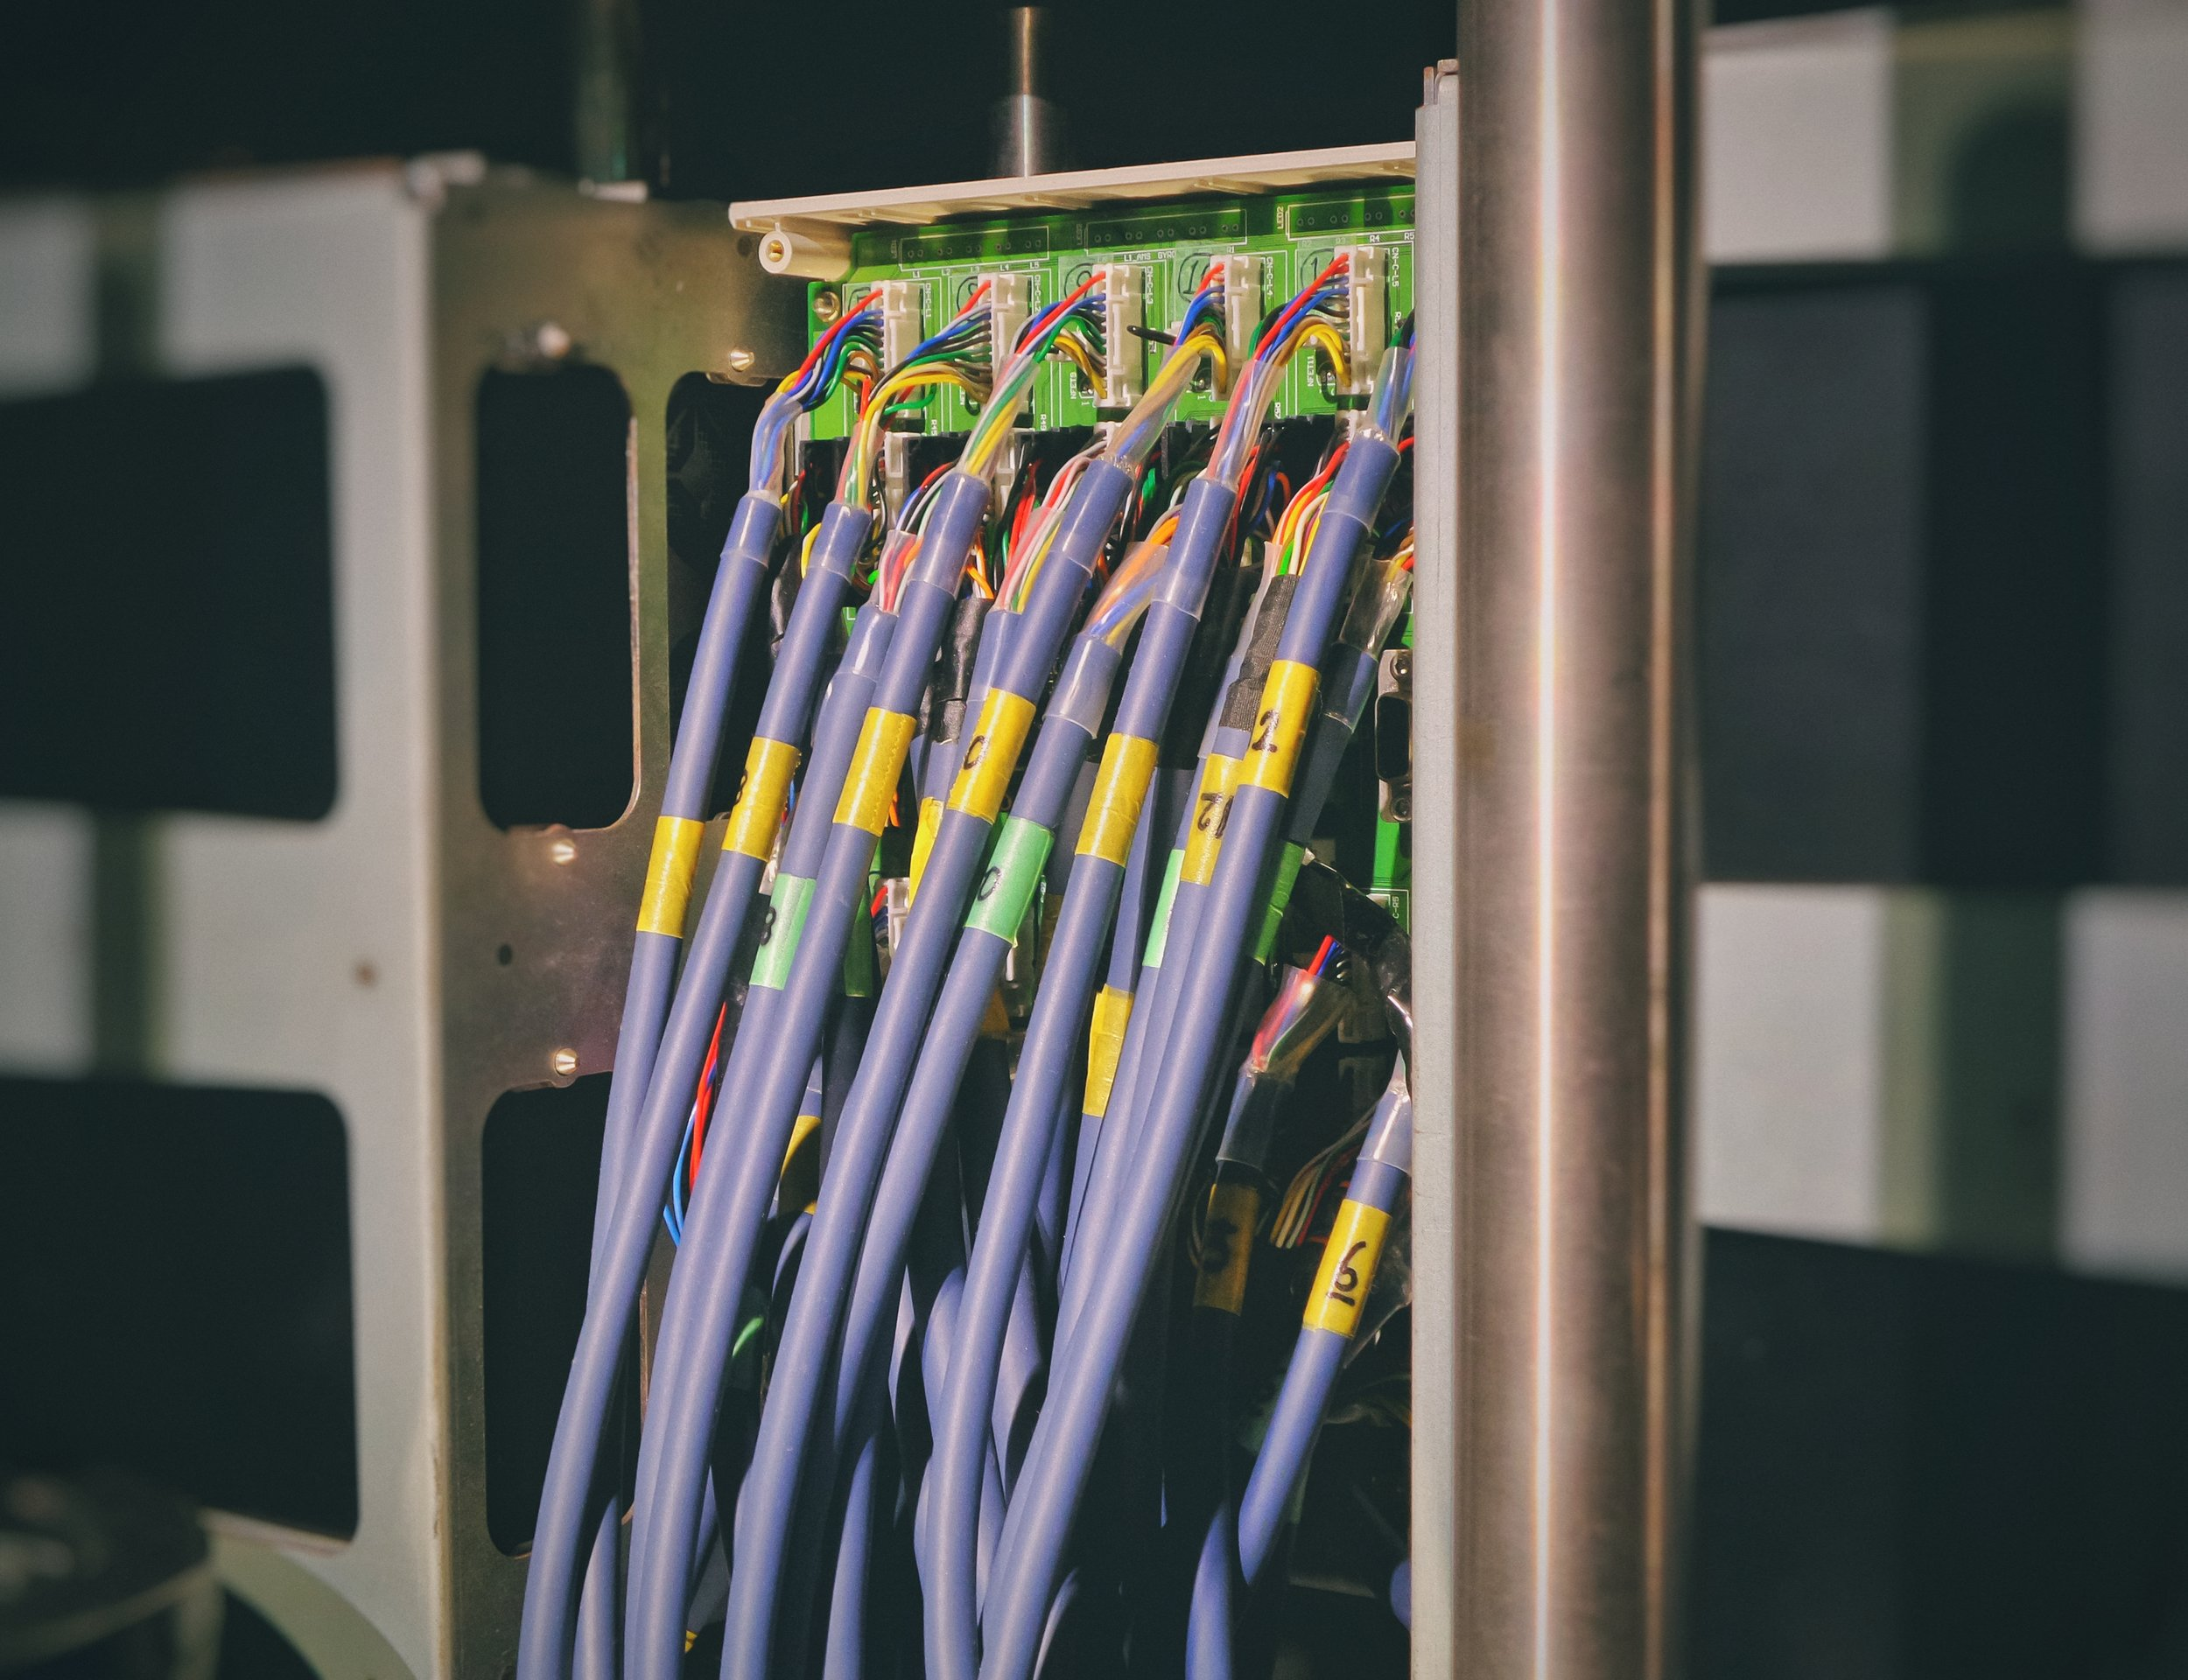 Networks | Servers - Proponent IT is known for its neat and clean installation process.We will work with you every step of the way to ensure a smooth transition to your new operating systems, and hardware. Servers, Nas Equipment, VOIP, and cable installation …Read More